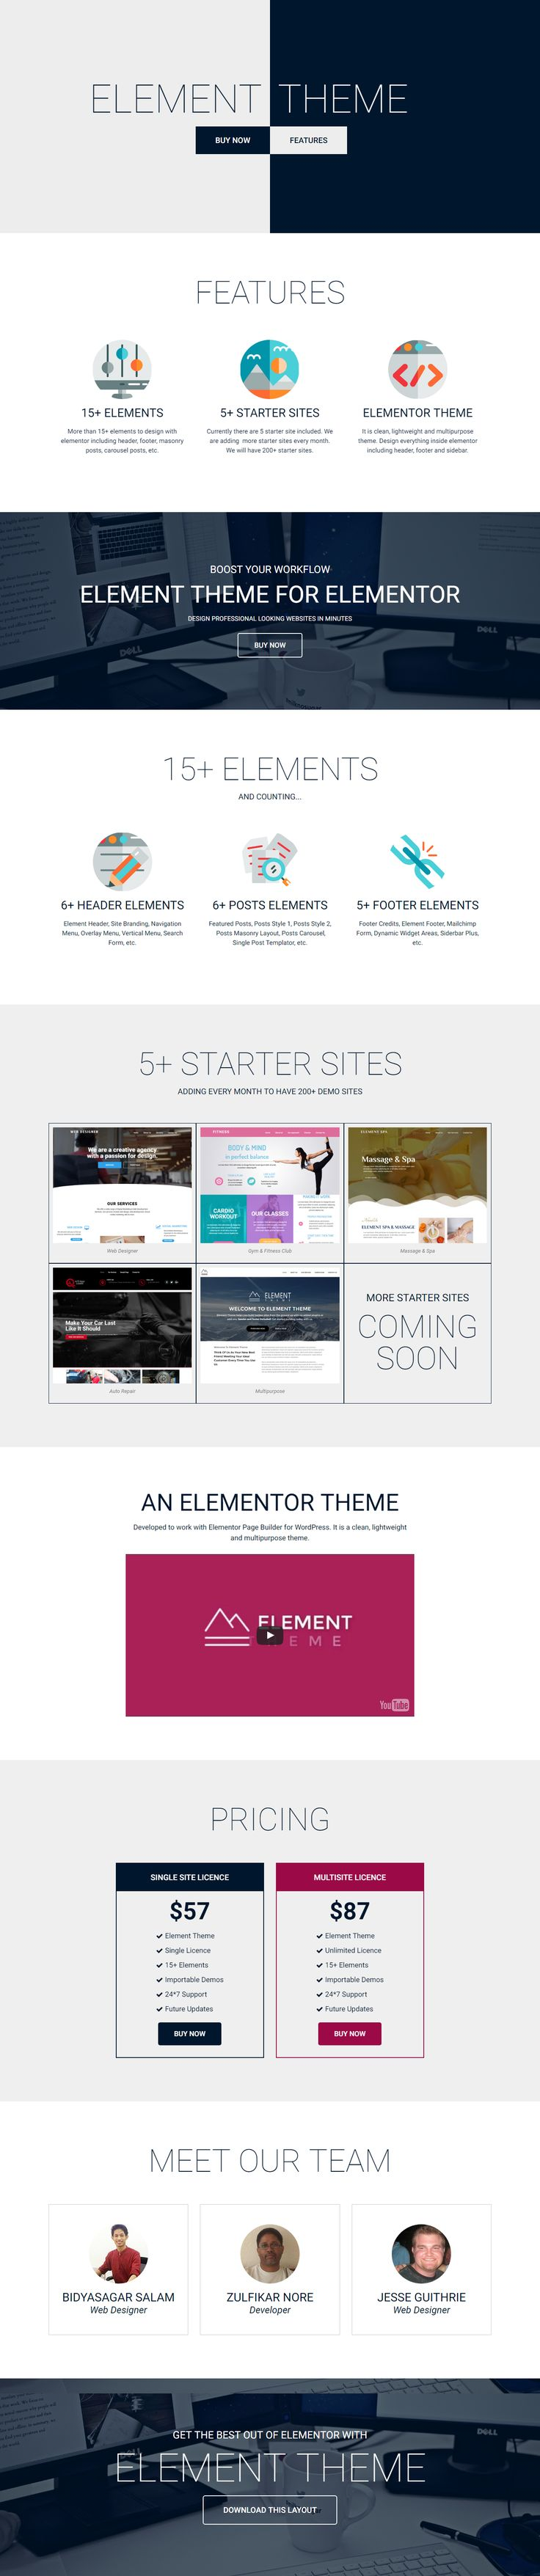 11 best elementor template images on pinterest layout template